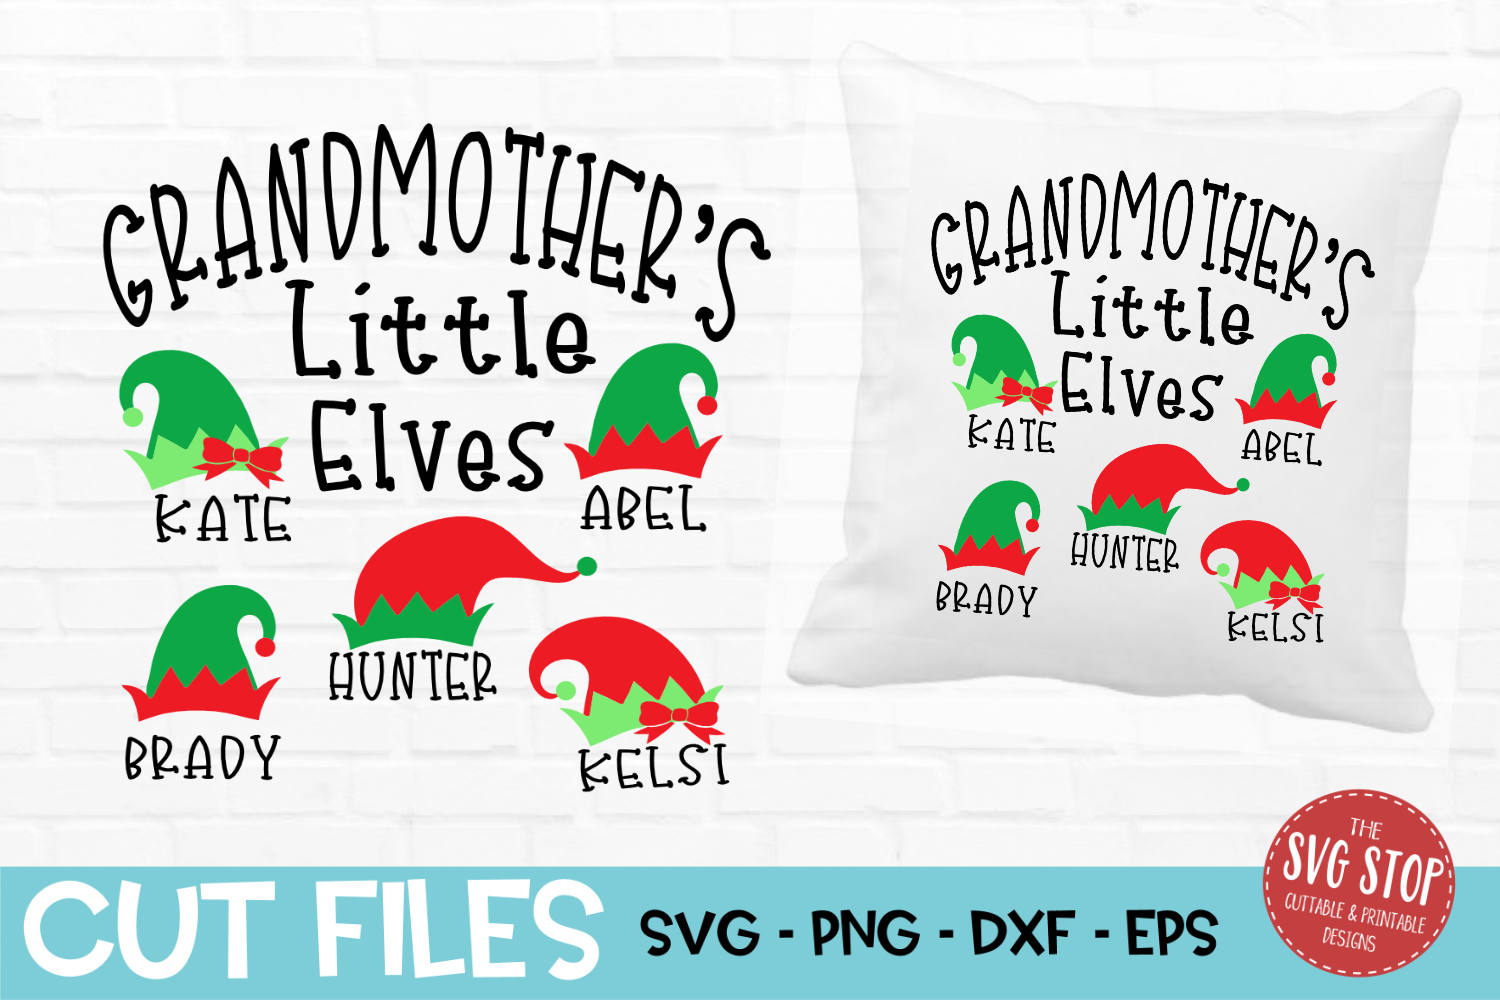 Grandmother Little Elves Christmas SVG, PNG, DXF, EPS example image 1